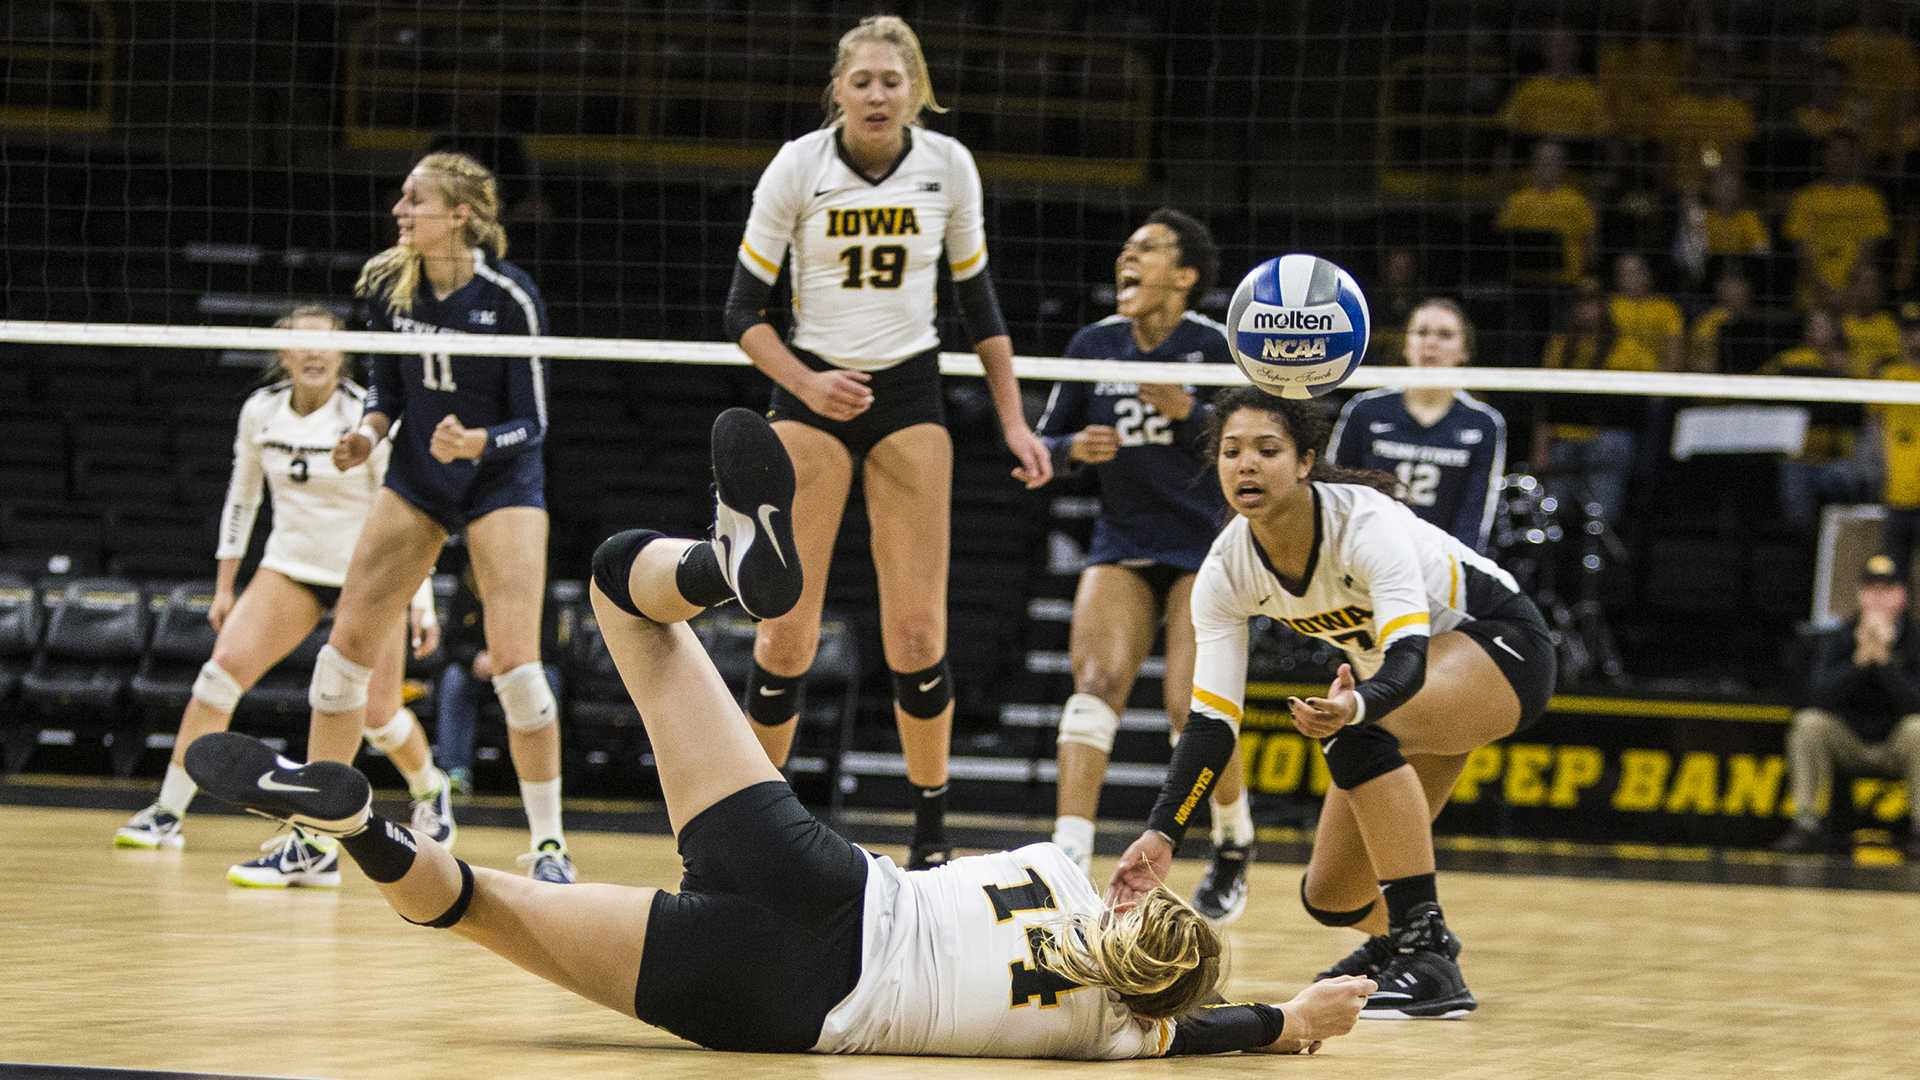 Iowa's Cali Hoye (14) dives for a missed shot during the match between Iowa and Penn State at Carver-Hawkeye Arena on Wednesday, Nov. 8, 2017. The Hawkeyes lost to the Nittany Lions 3-0. (Ben Smith/The Daily Iowan)